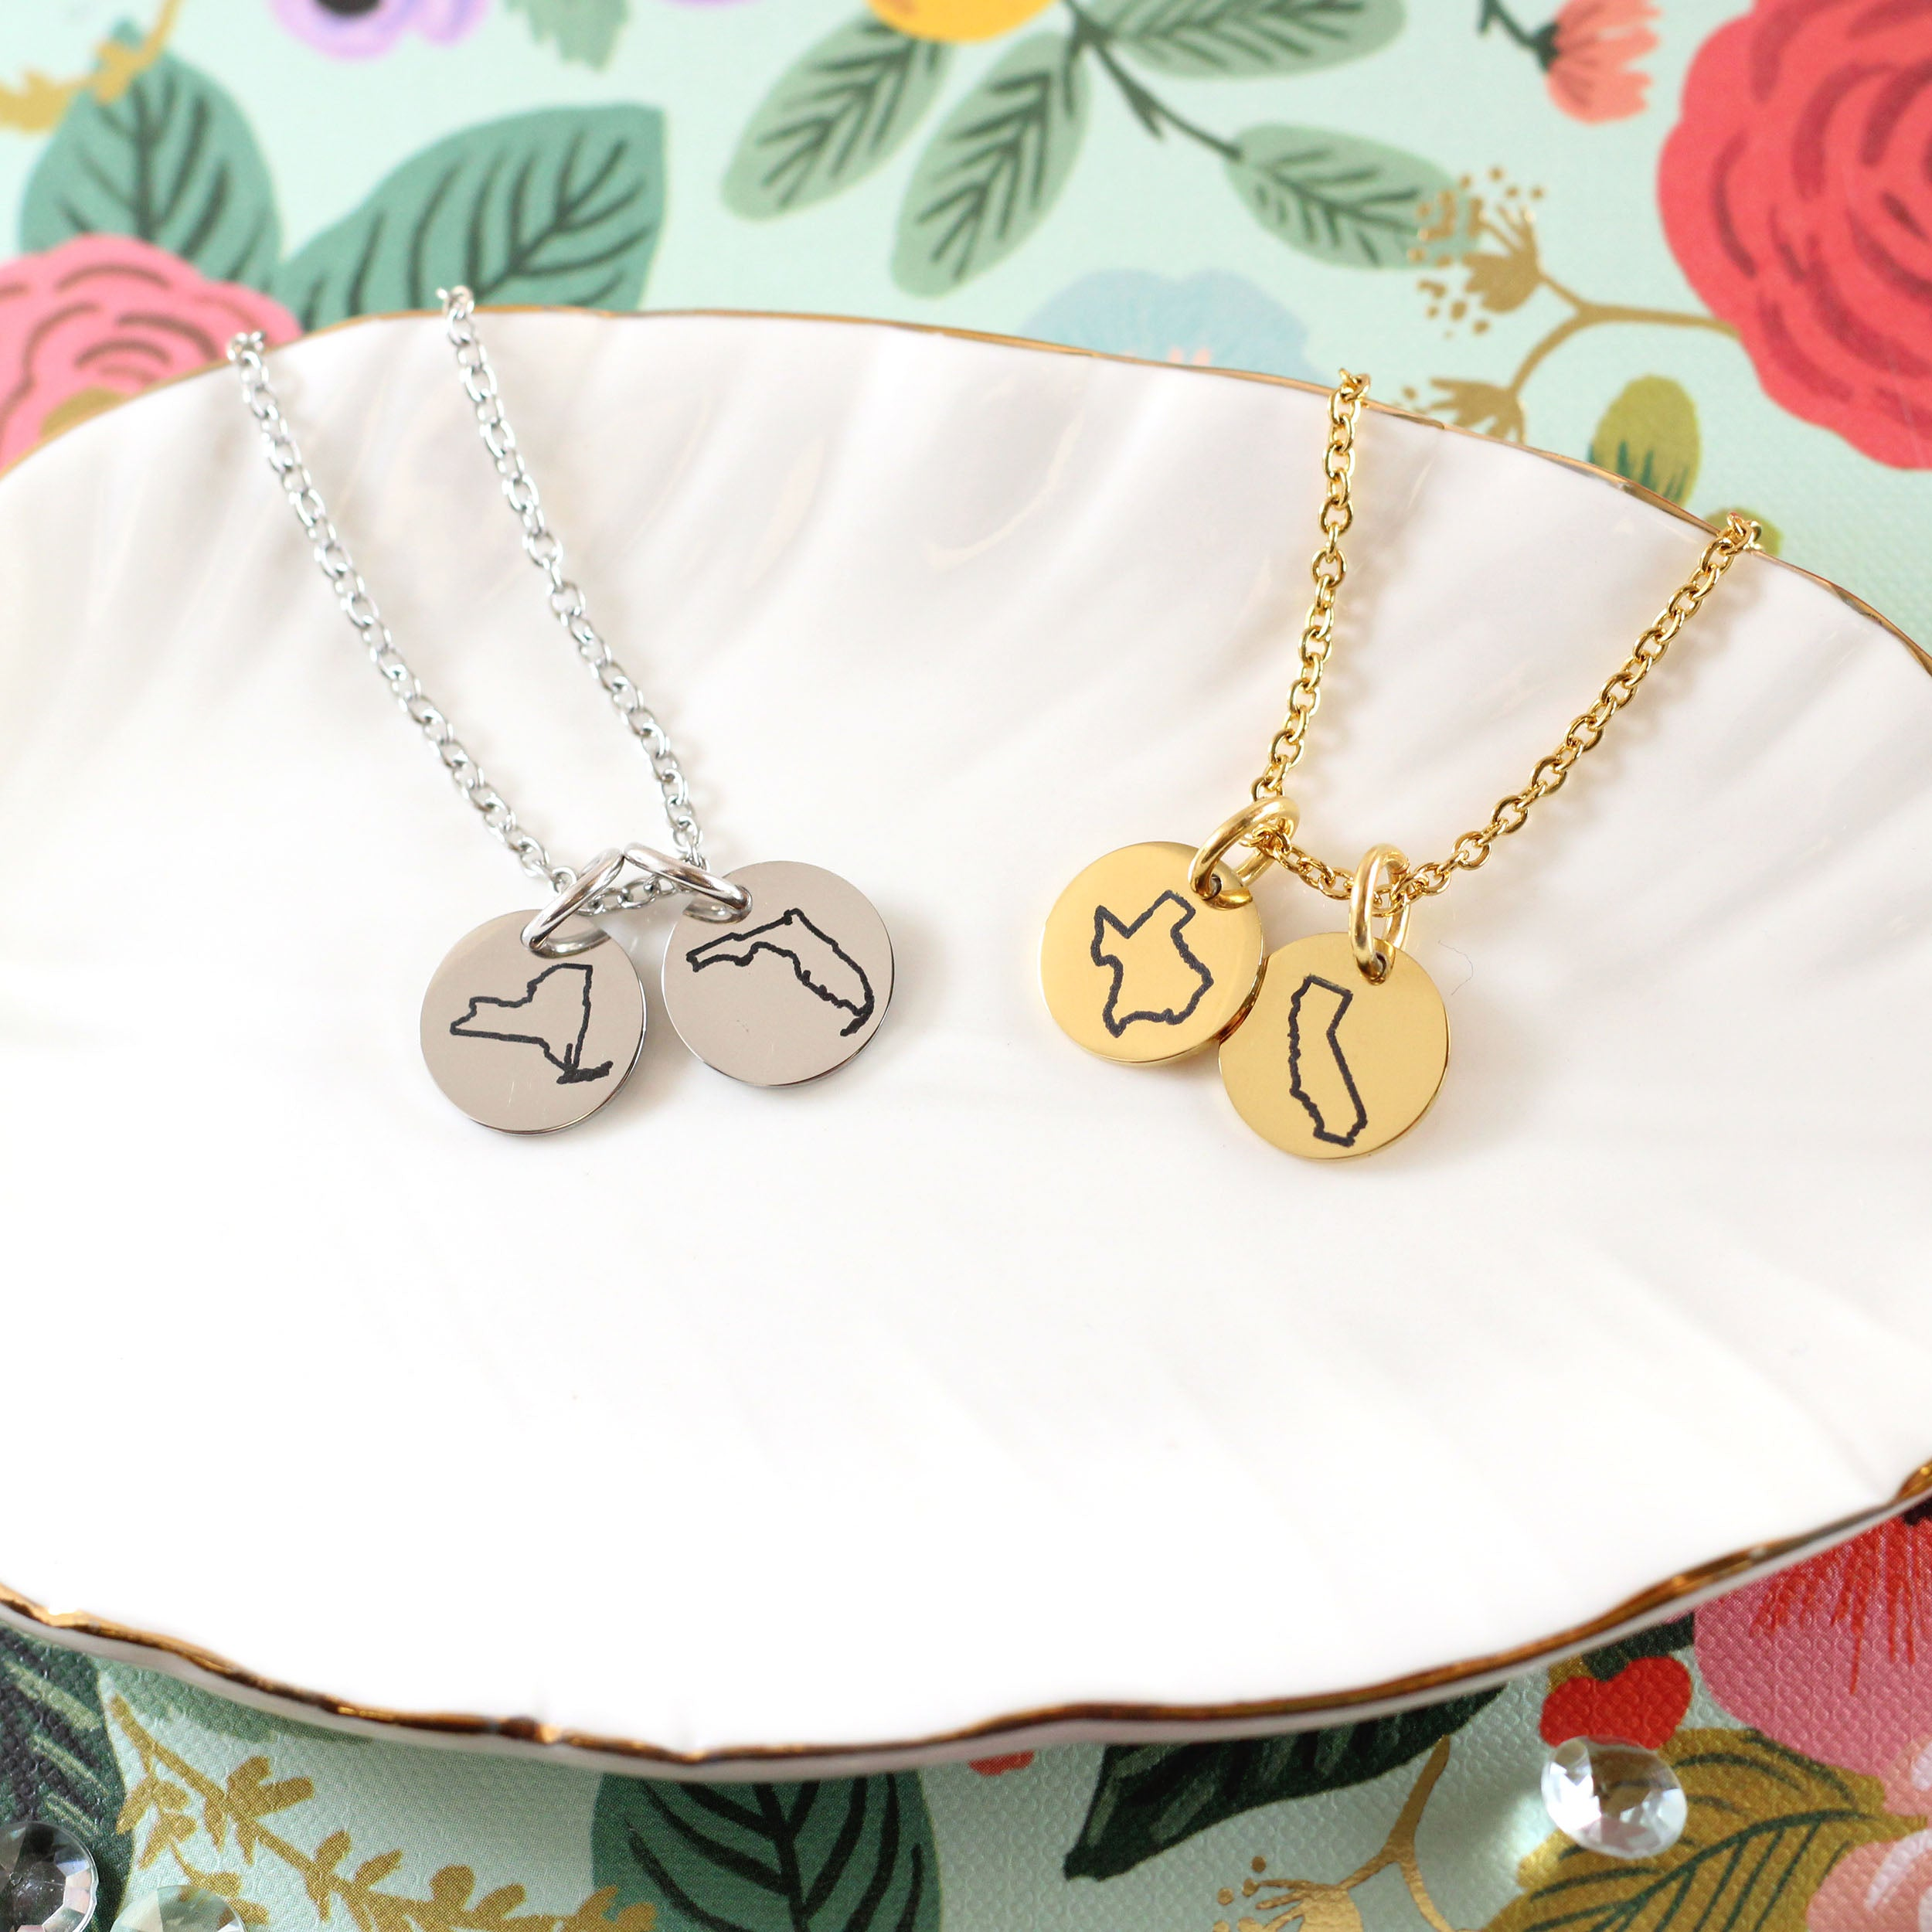 Gold and Silver State Necklaces on Tray